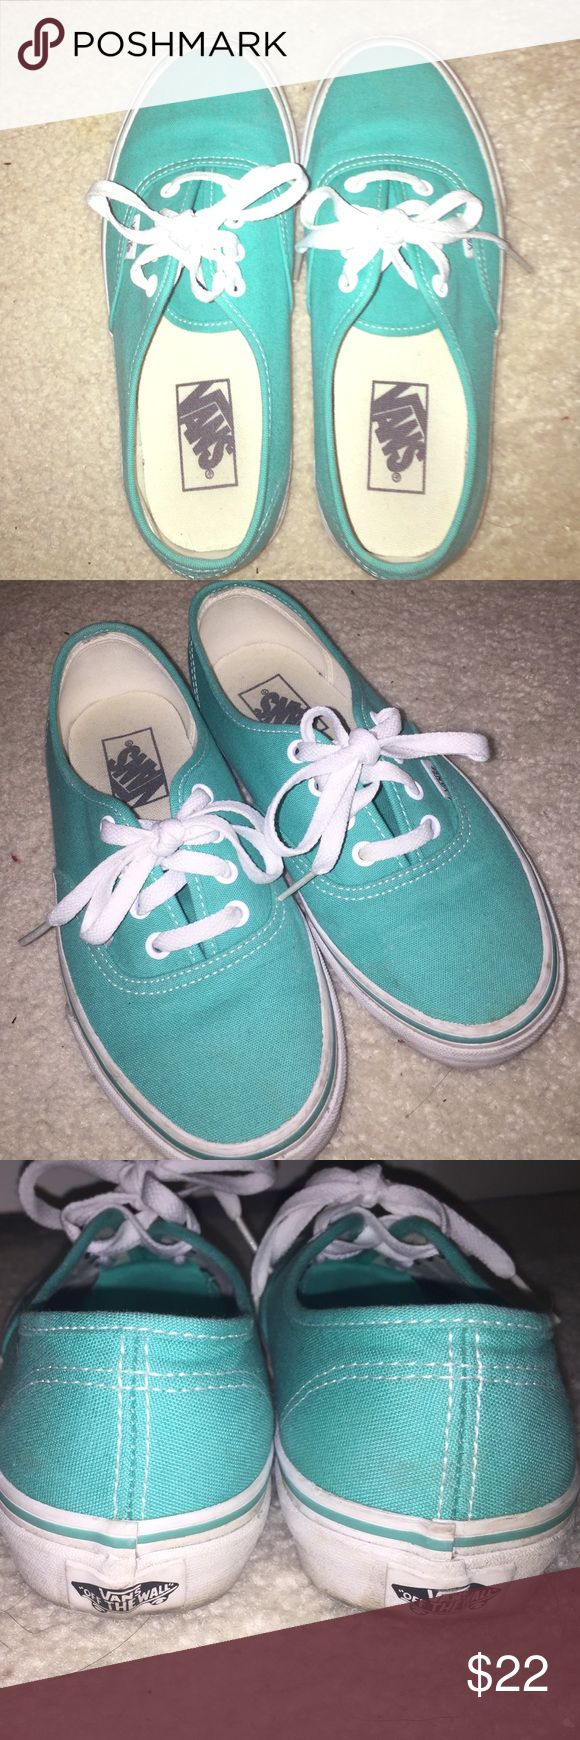 Mint Green Vans Mint green vans! Worn only few times, no damages :) slight scuffs on sole. Size 5 in men's & size 6.5 in women's. Vans Shoes Sneakers